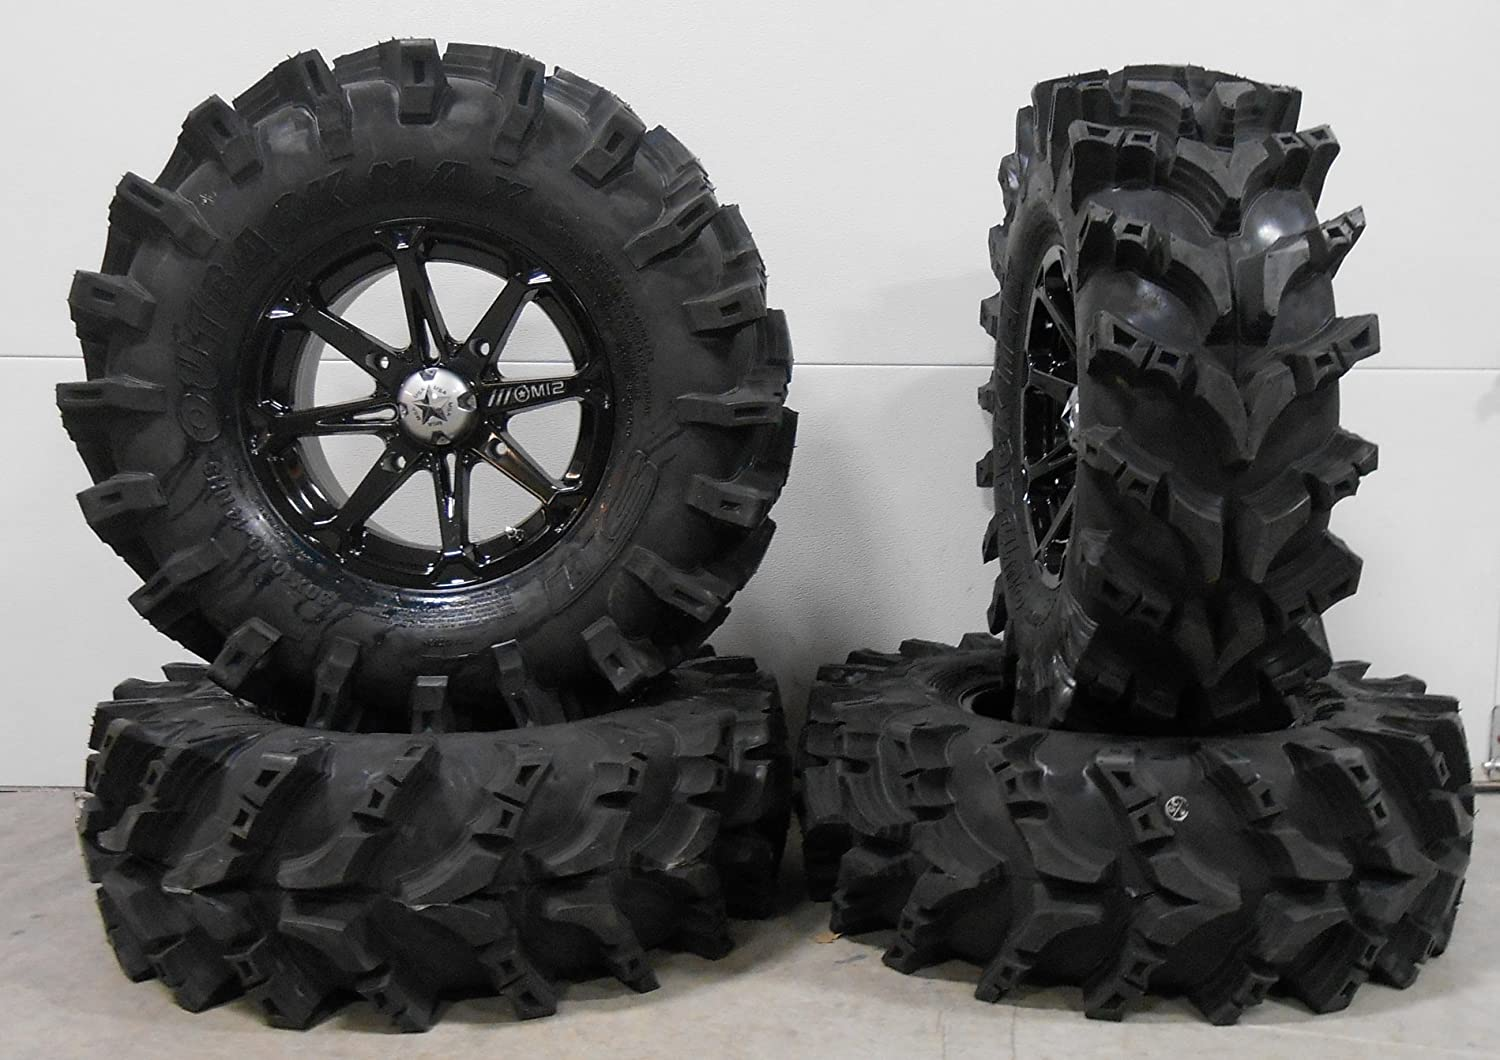 Bundle - 9 Items: MSA Black Diesel 14' ATV Wheels 30' Outback Max Tires [4x137 Bolt Pattern 10mmx1.25 Lug Kit] Multiple